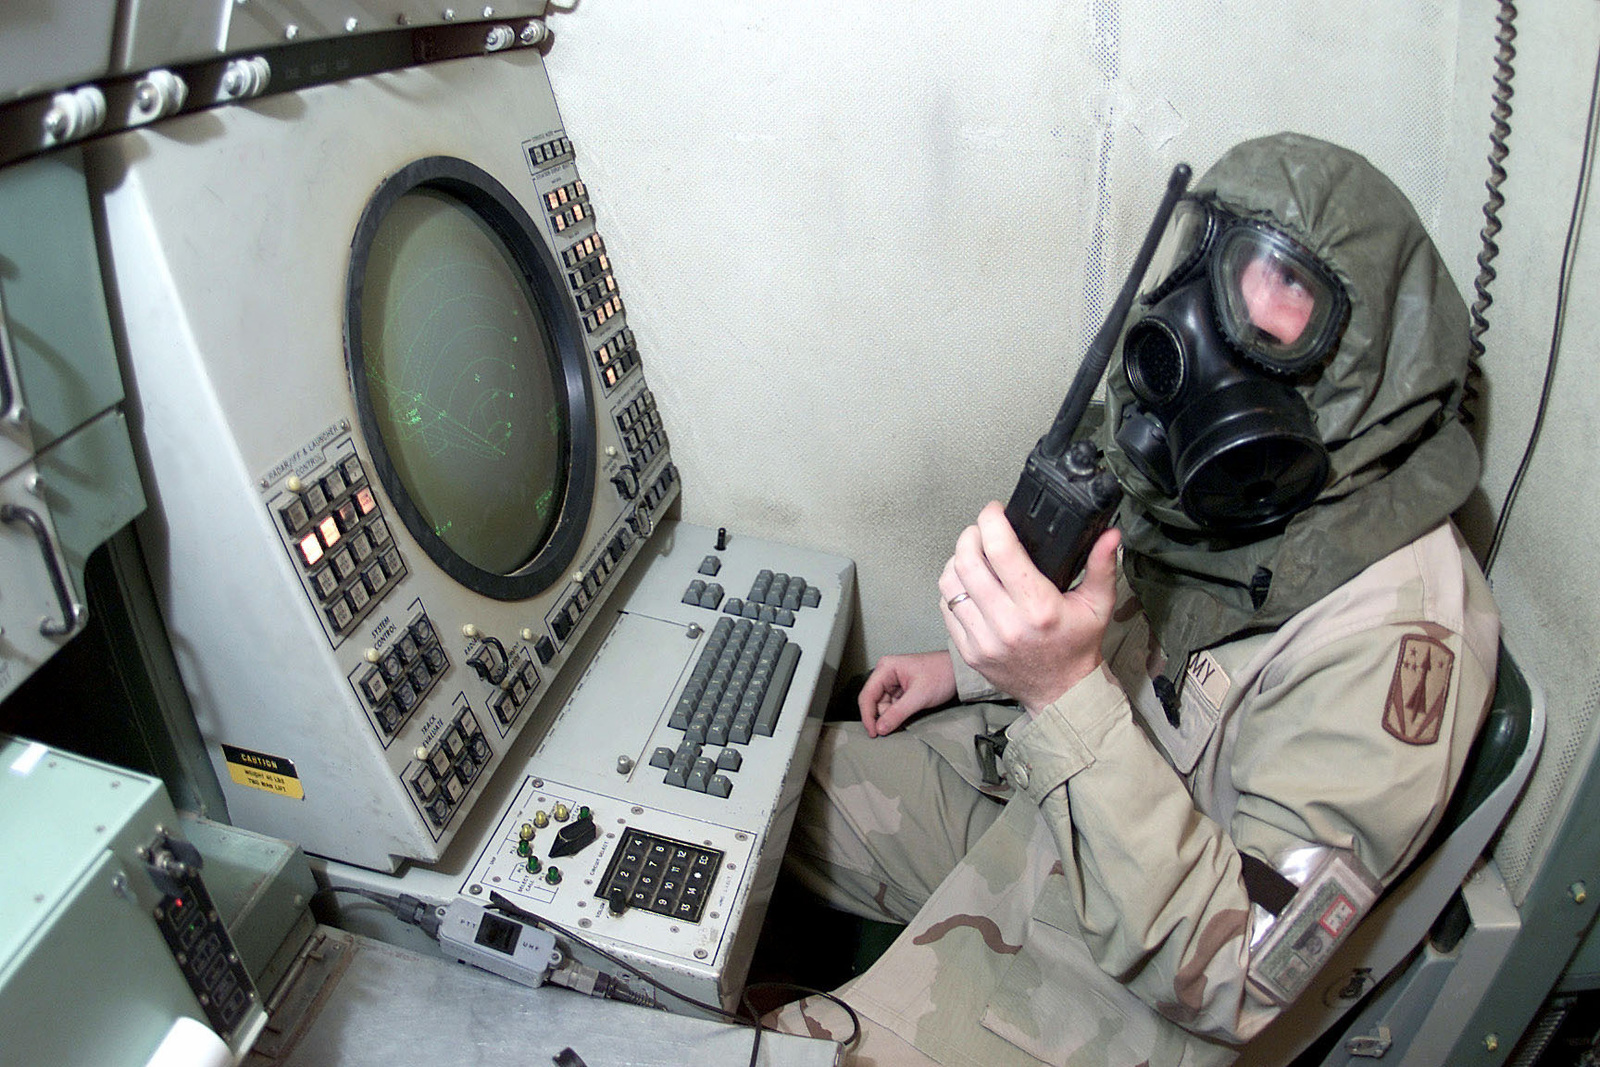 US Army Second Lieutenant Brendan E. Sullivan, Tactical Control Officer, Delta Battery Task Force, communicates with his team through his gas mask during a drill in the engagement control station for the Patriot missile system, Prince Sultan Air Base, Saudi Arabia, on October 26th, 2000. 2LT Sullivan is part of the coalition force here to support Operation SOUTHERN WATCH, a military effort to enforce the no-fly and no-drive zone in Southern Iraq